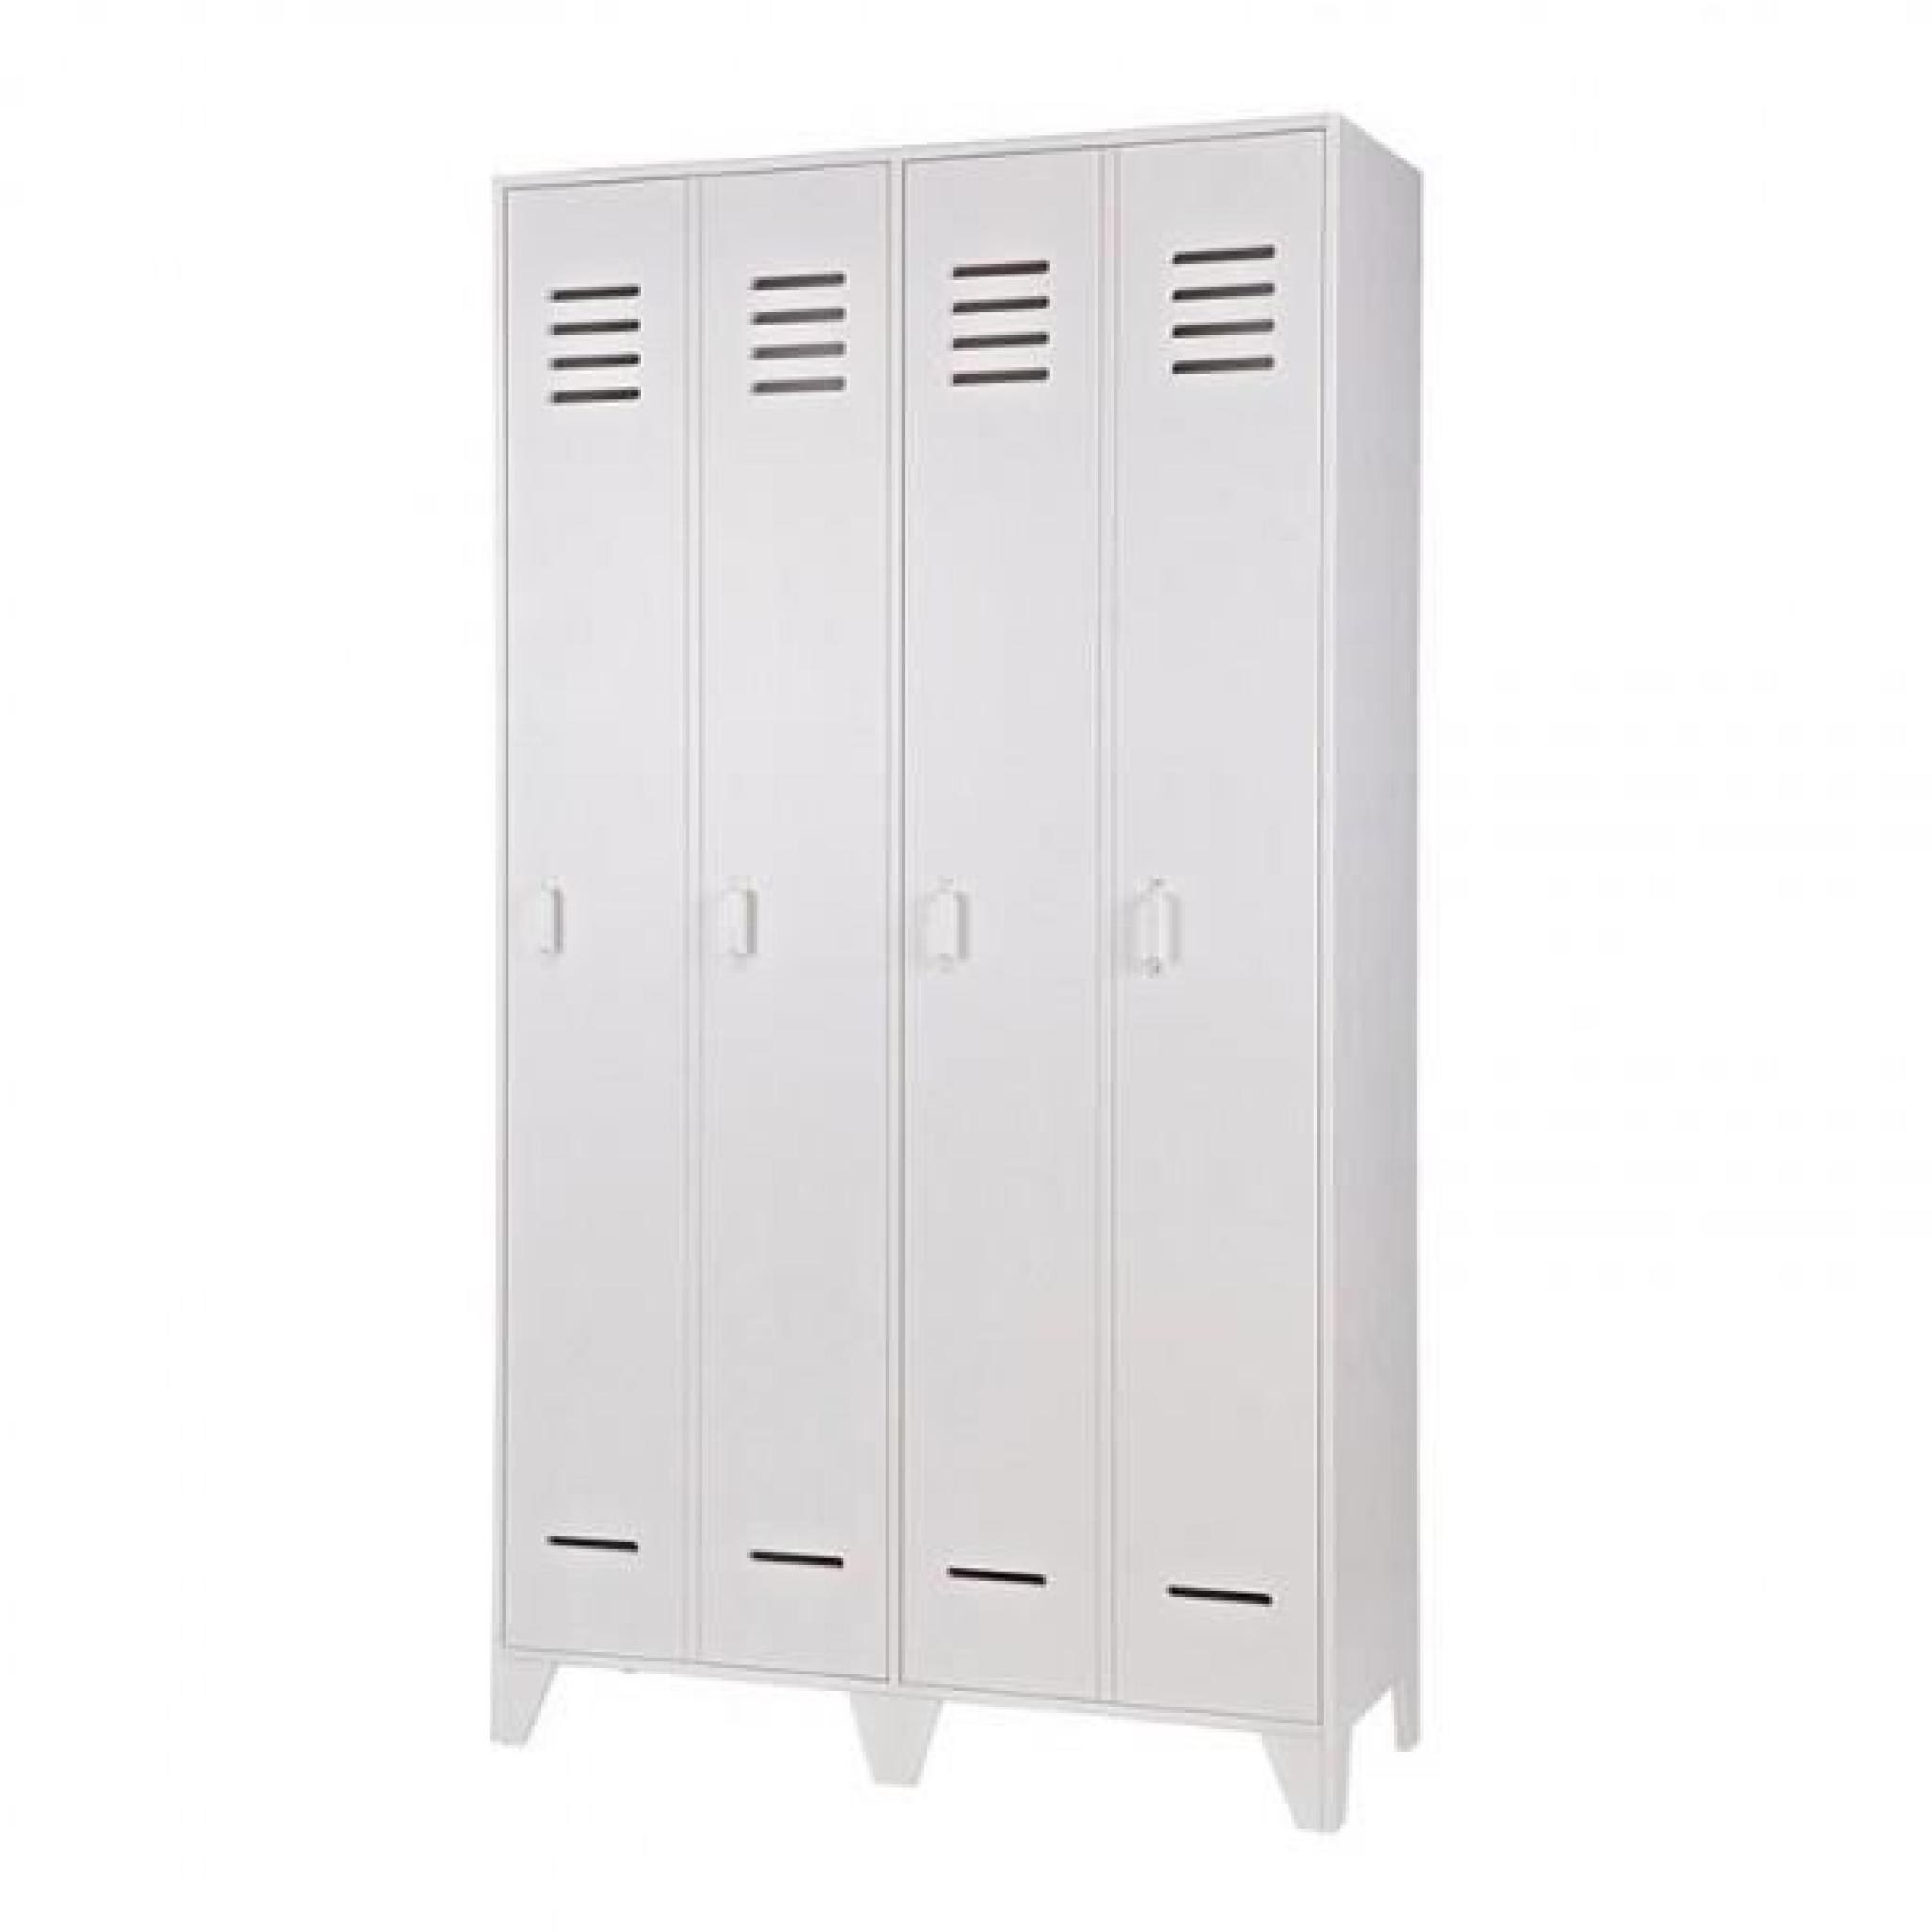 armoire enfant casier 2 portes en pin massif blanc achat vente armoire de chambre pas cher. Black Bedroom Furniture Sets. Home Design Ideas